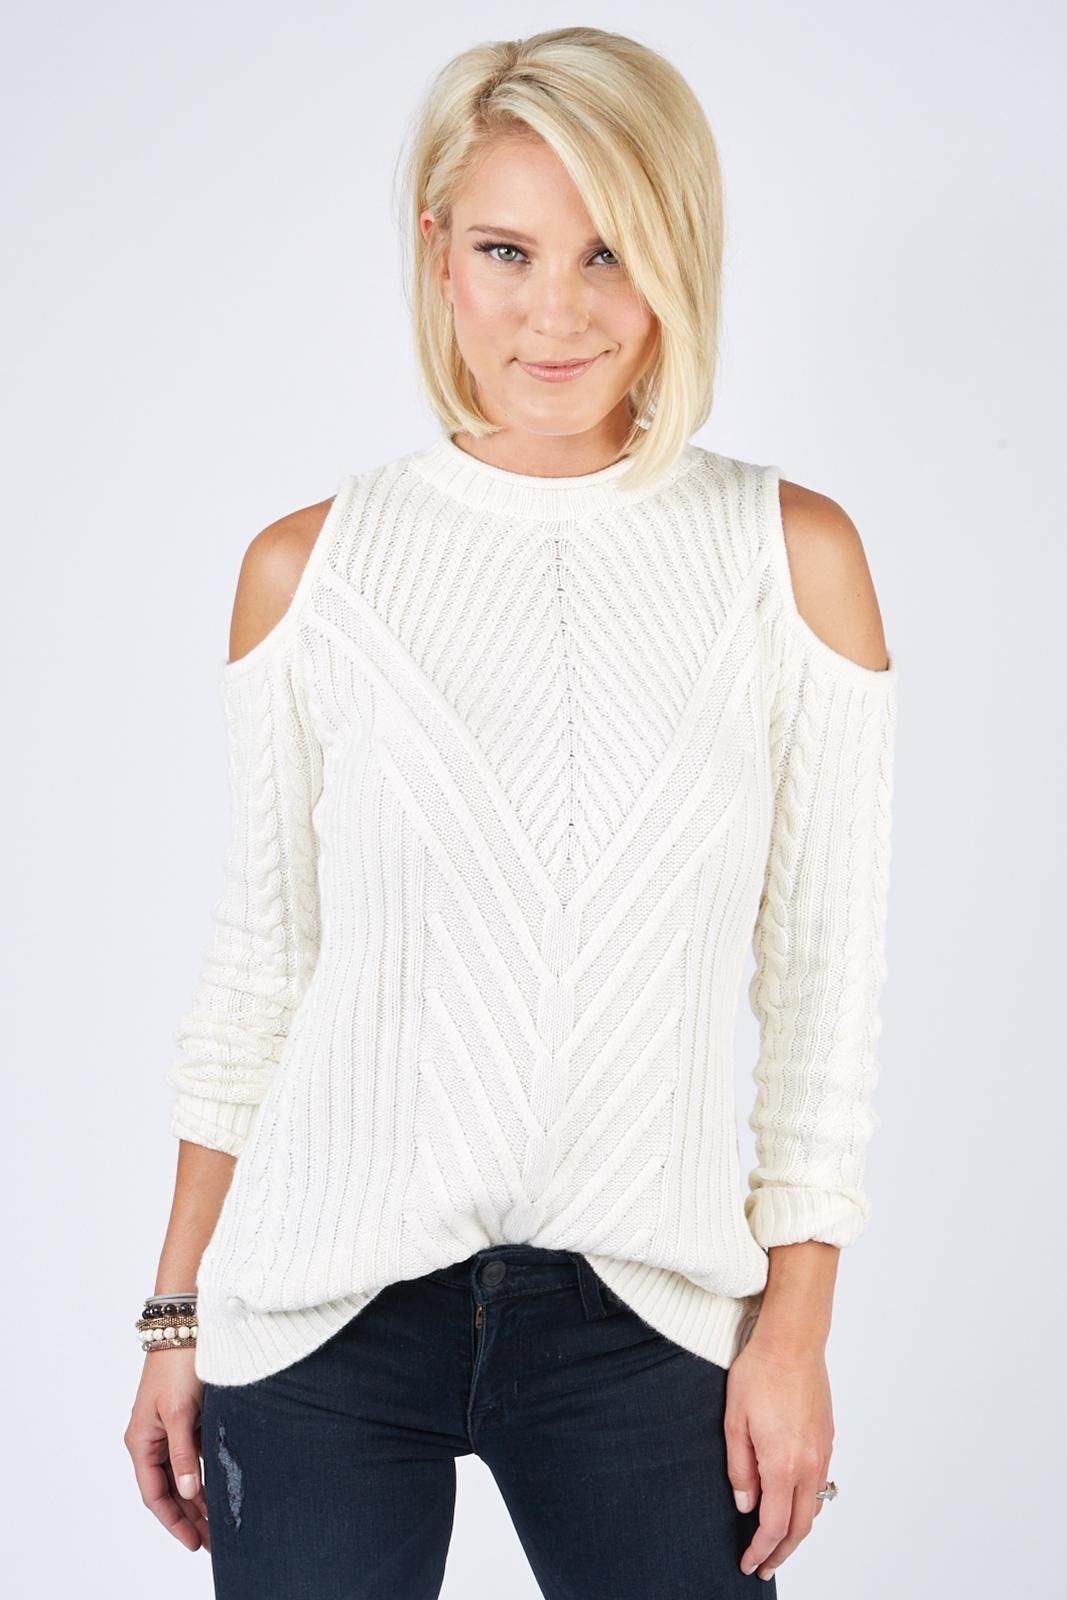 This cold shoulder sweater brings a little sexiness to a ...